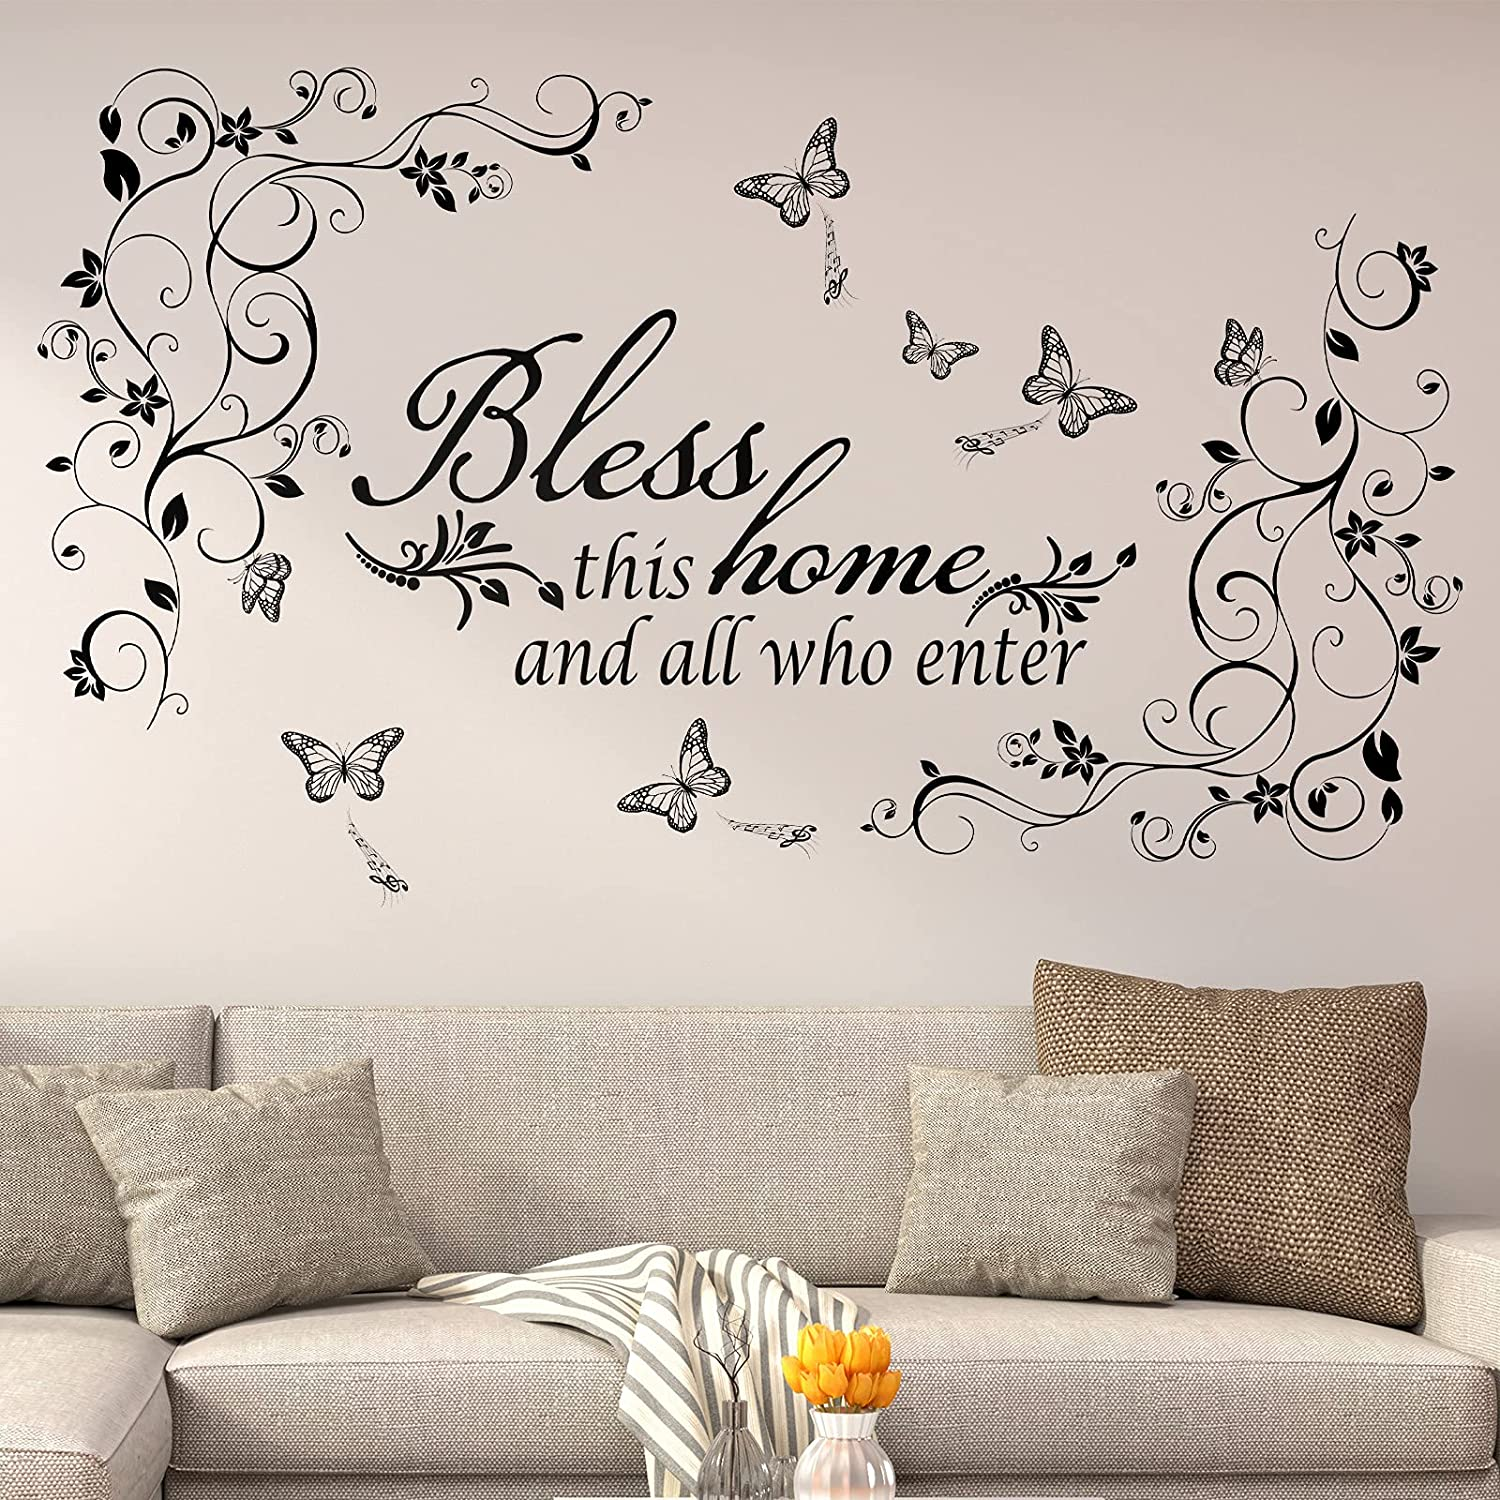 Vinyl Wall Quotes Bless This Home and All who Enter Wall Decals Removable Vinyl DIY Black Flowers Vine Wall Stickers Beautiful Butterfly Wall Sticker Murals Peel and Stick Art for Home Living Room: Kitchen & Dining